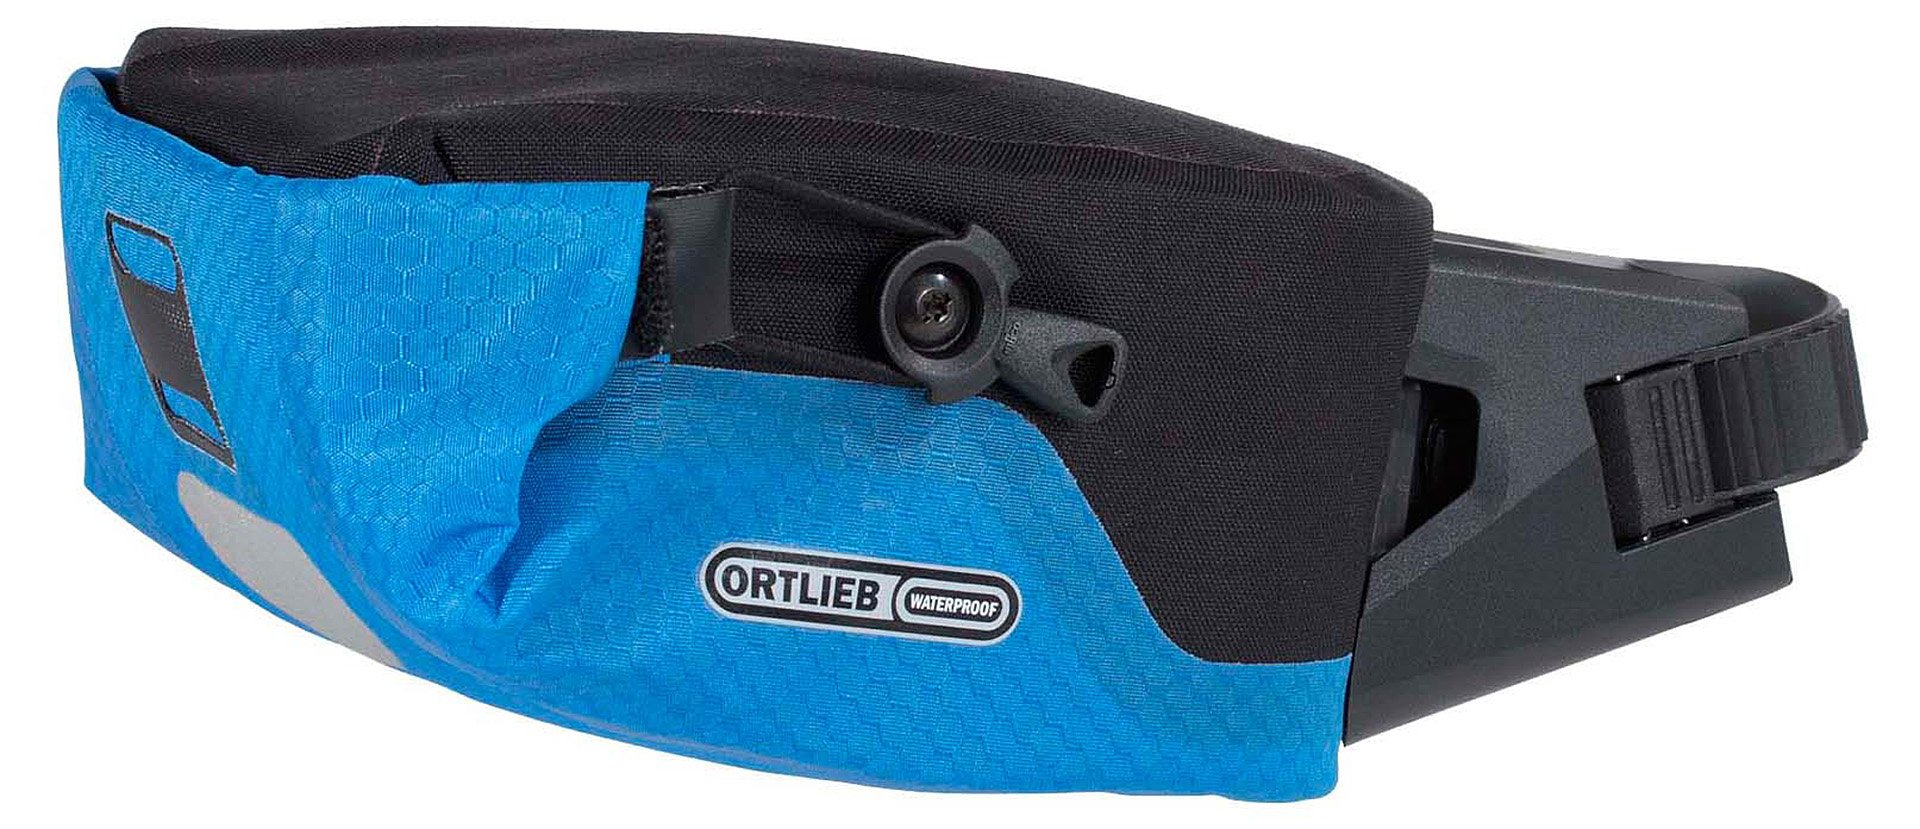 Ortileb Seatpost Bag